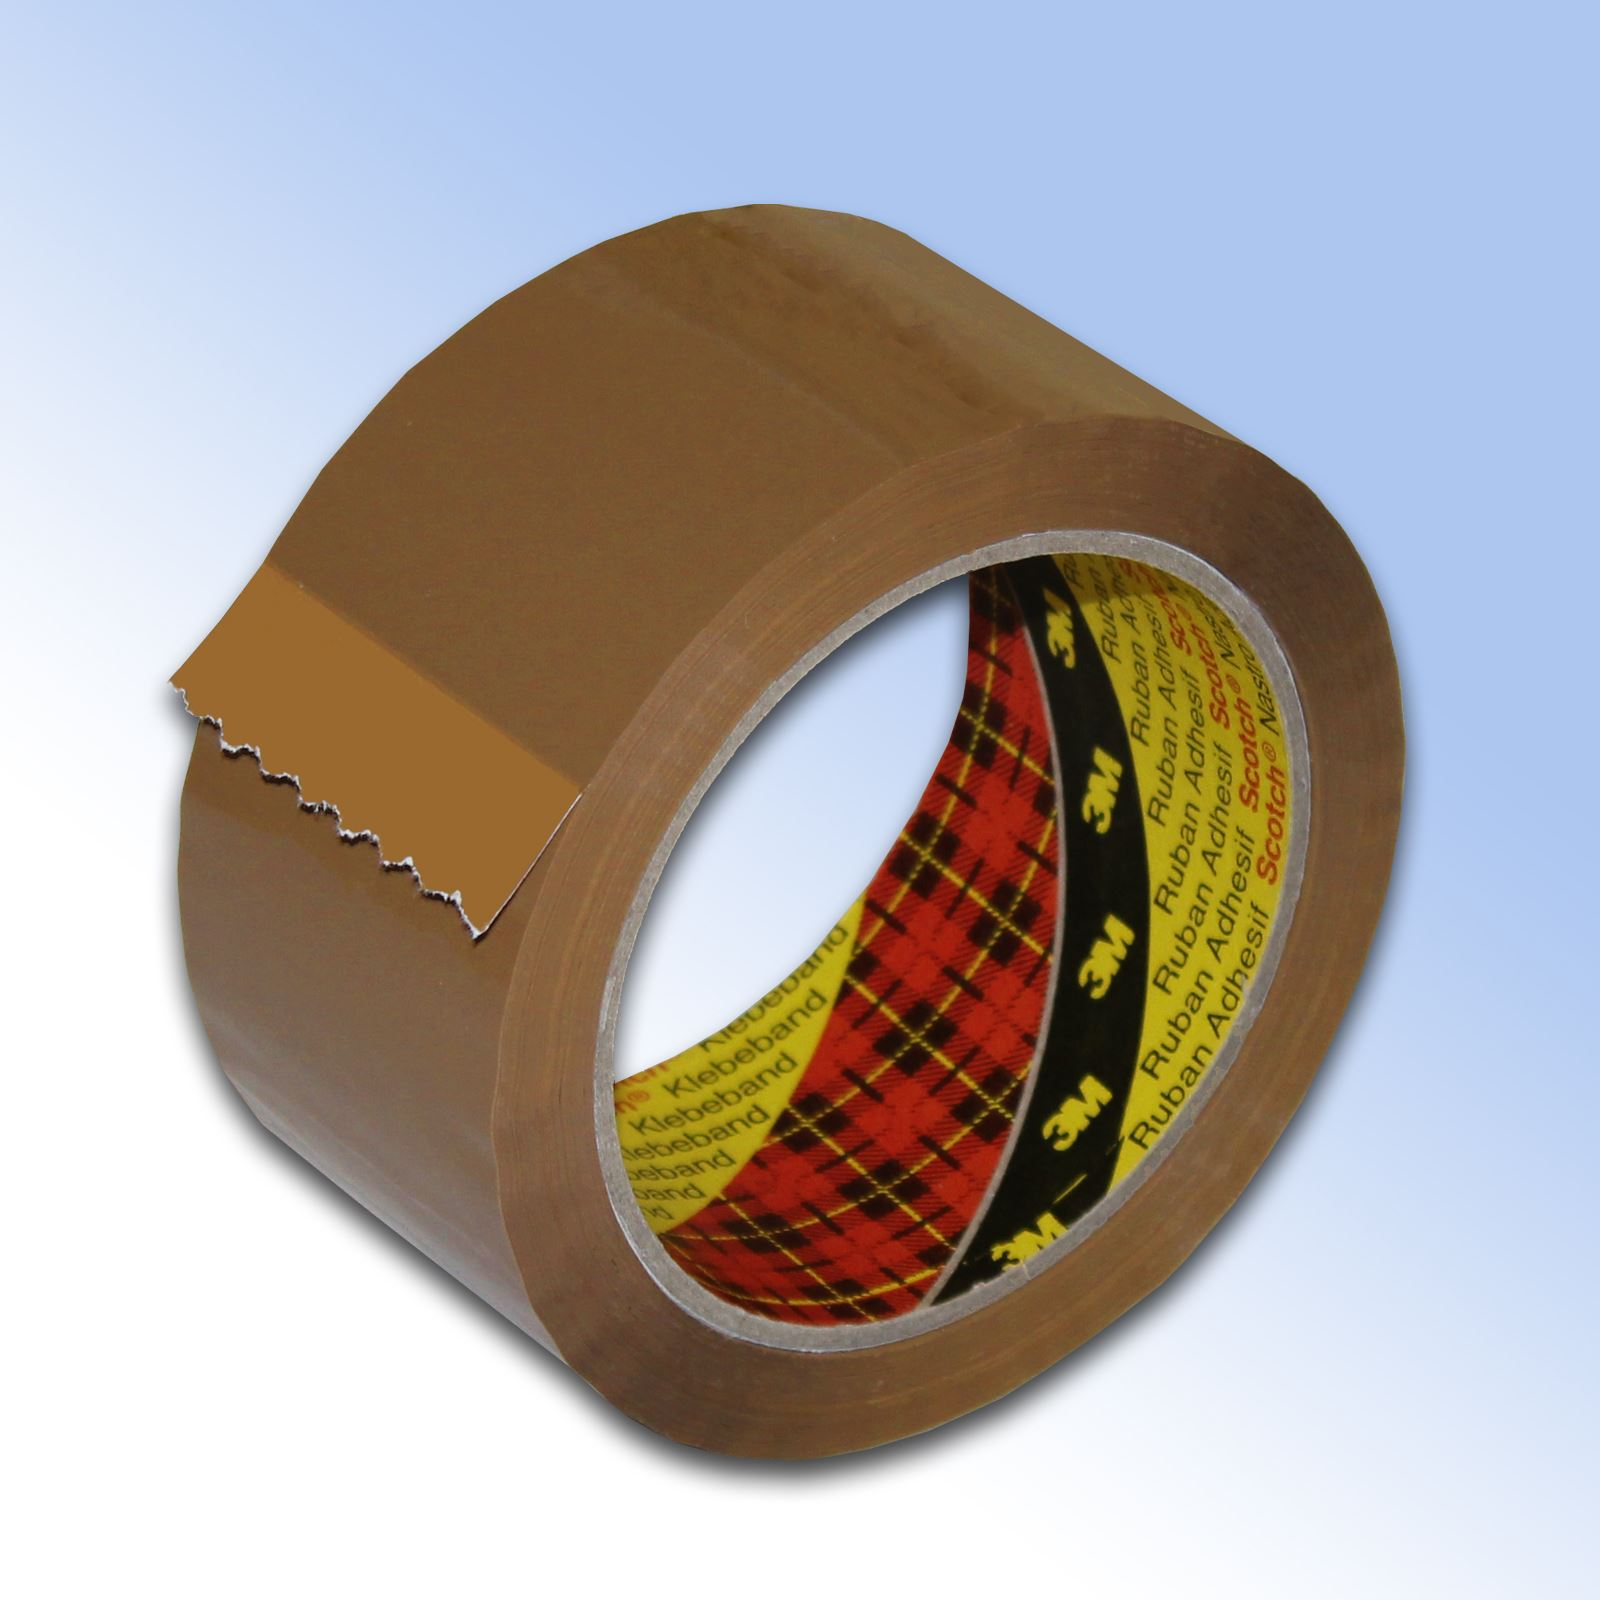 3M-SCOTCH-Clear-and-Buff-Parcel-Packing-Tapes-General-Purpose-and-Low-Noise